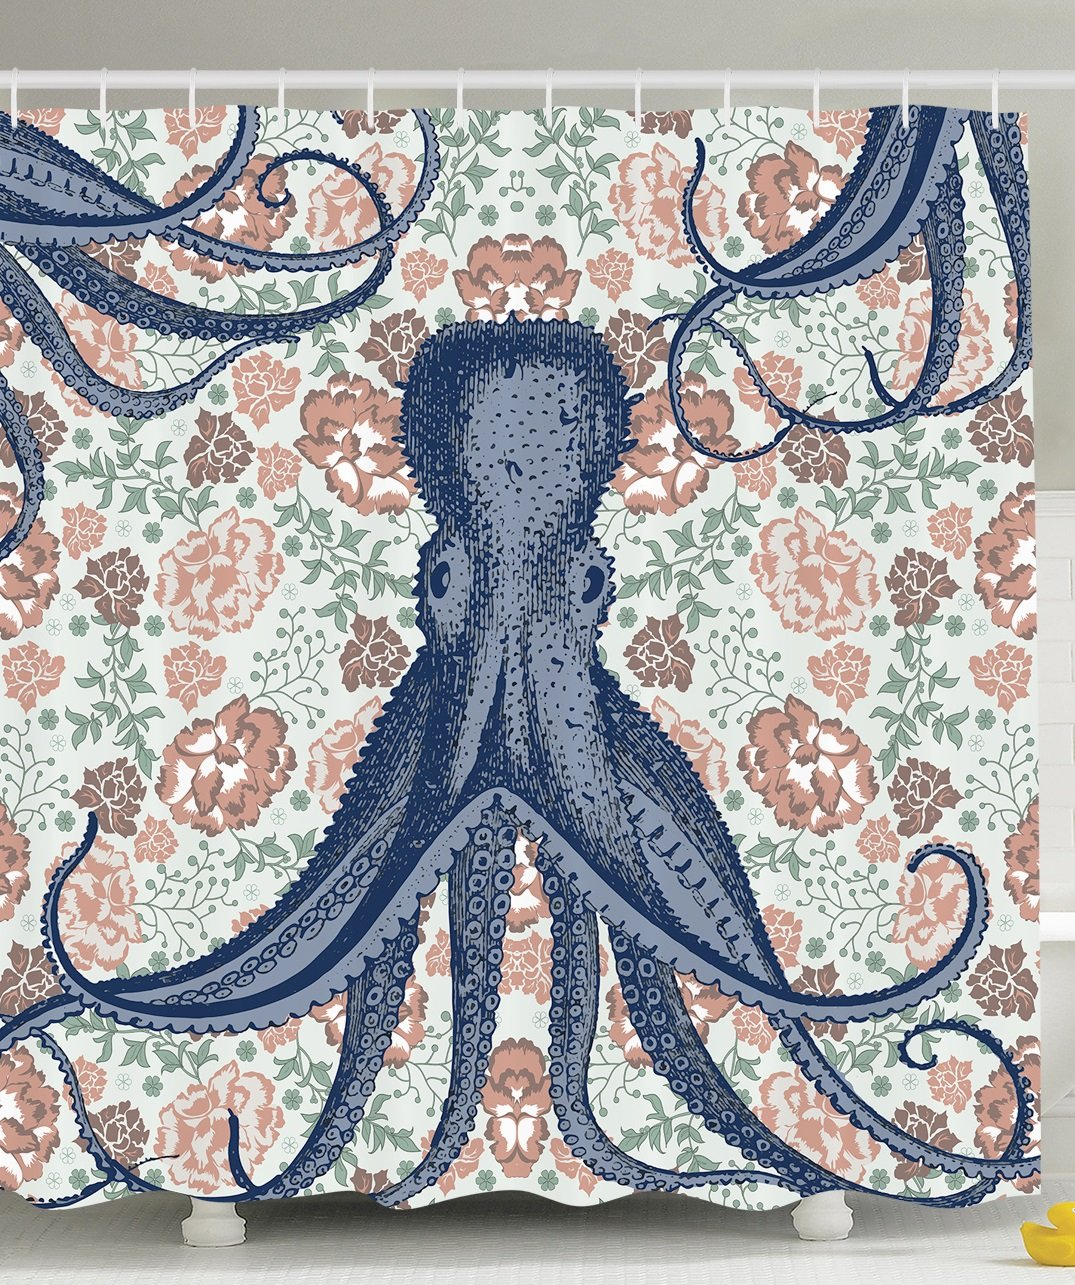 Kraken shower curtain - Amazon Com Kraken Shower Curtain Personalized Decor For Bathroom Octopus With Tentacles Floral Design And Flower Print Decorations Multicolor Decorations